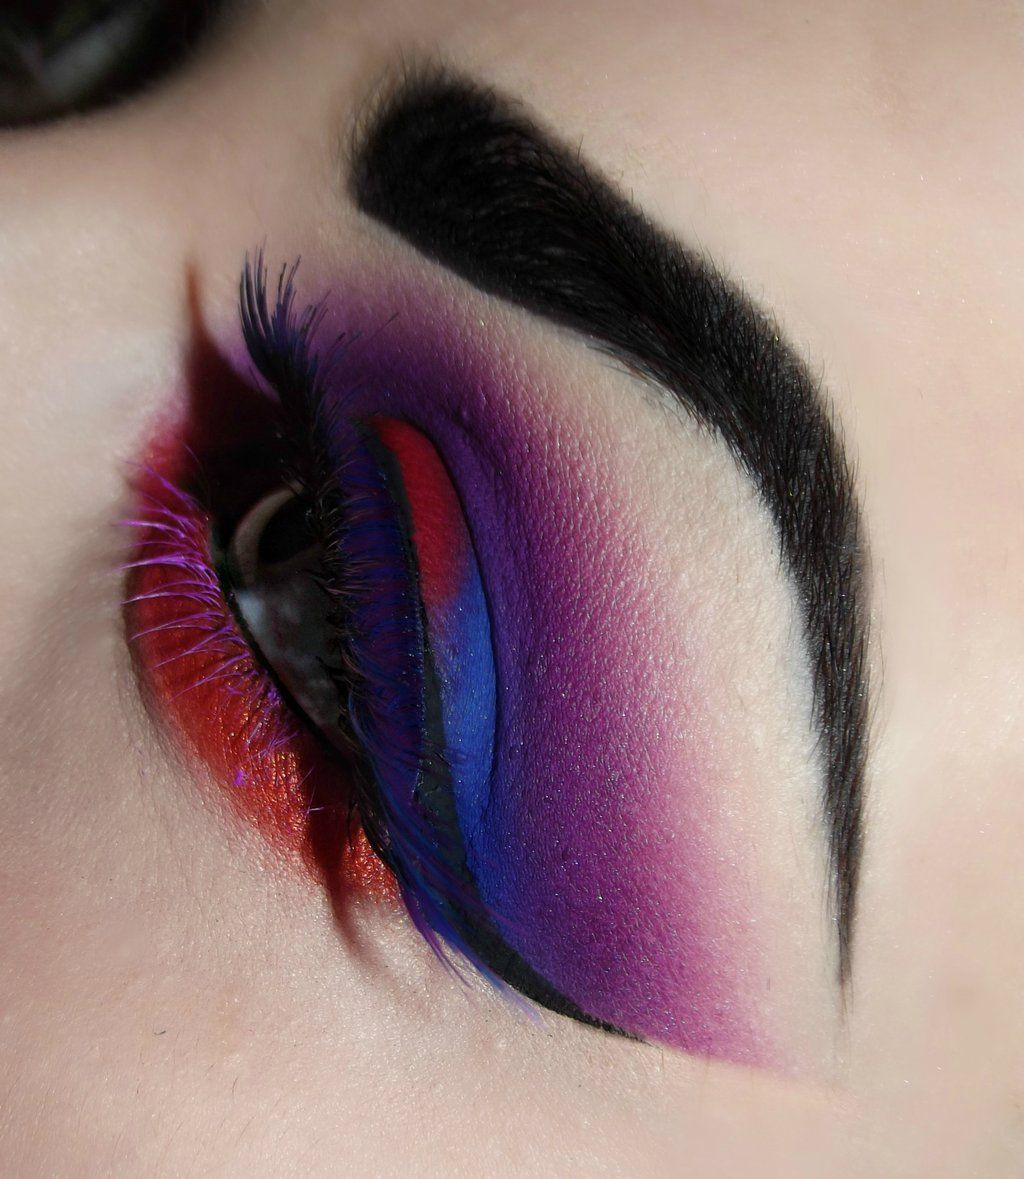 Outstanding Collection of Eye Makeup by Kirsty Childs_11 @ GenCept